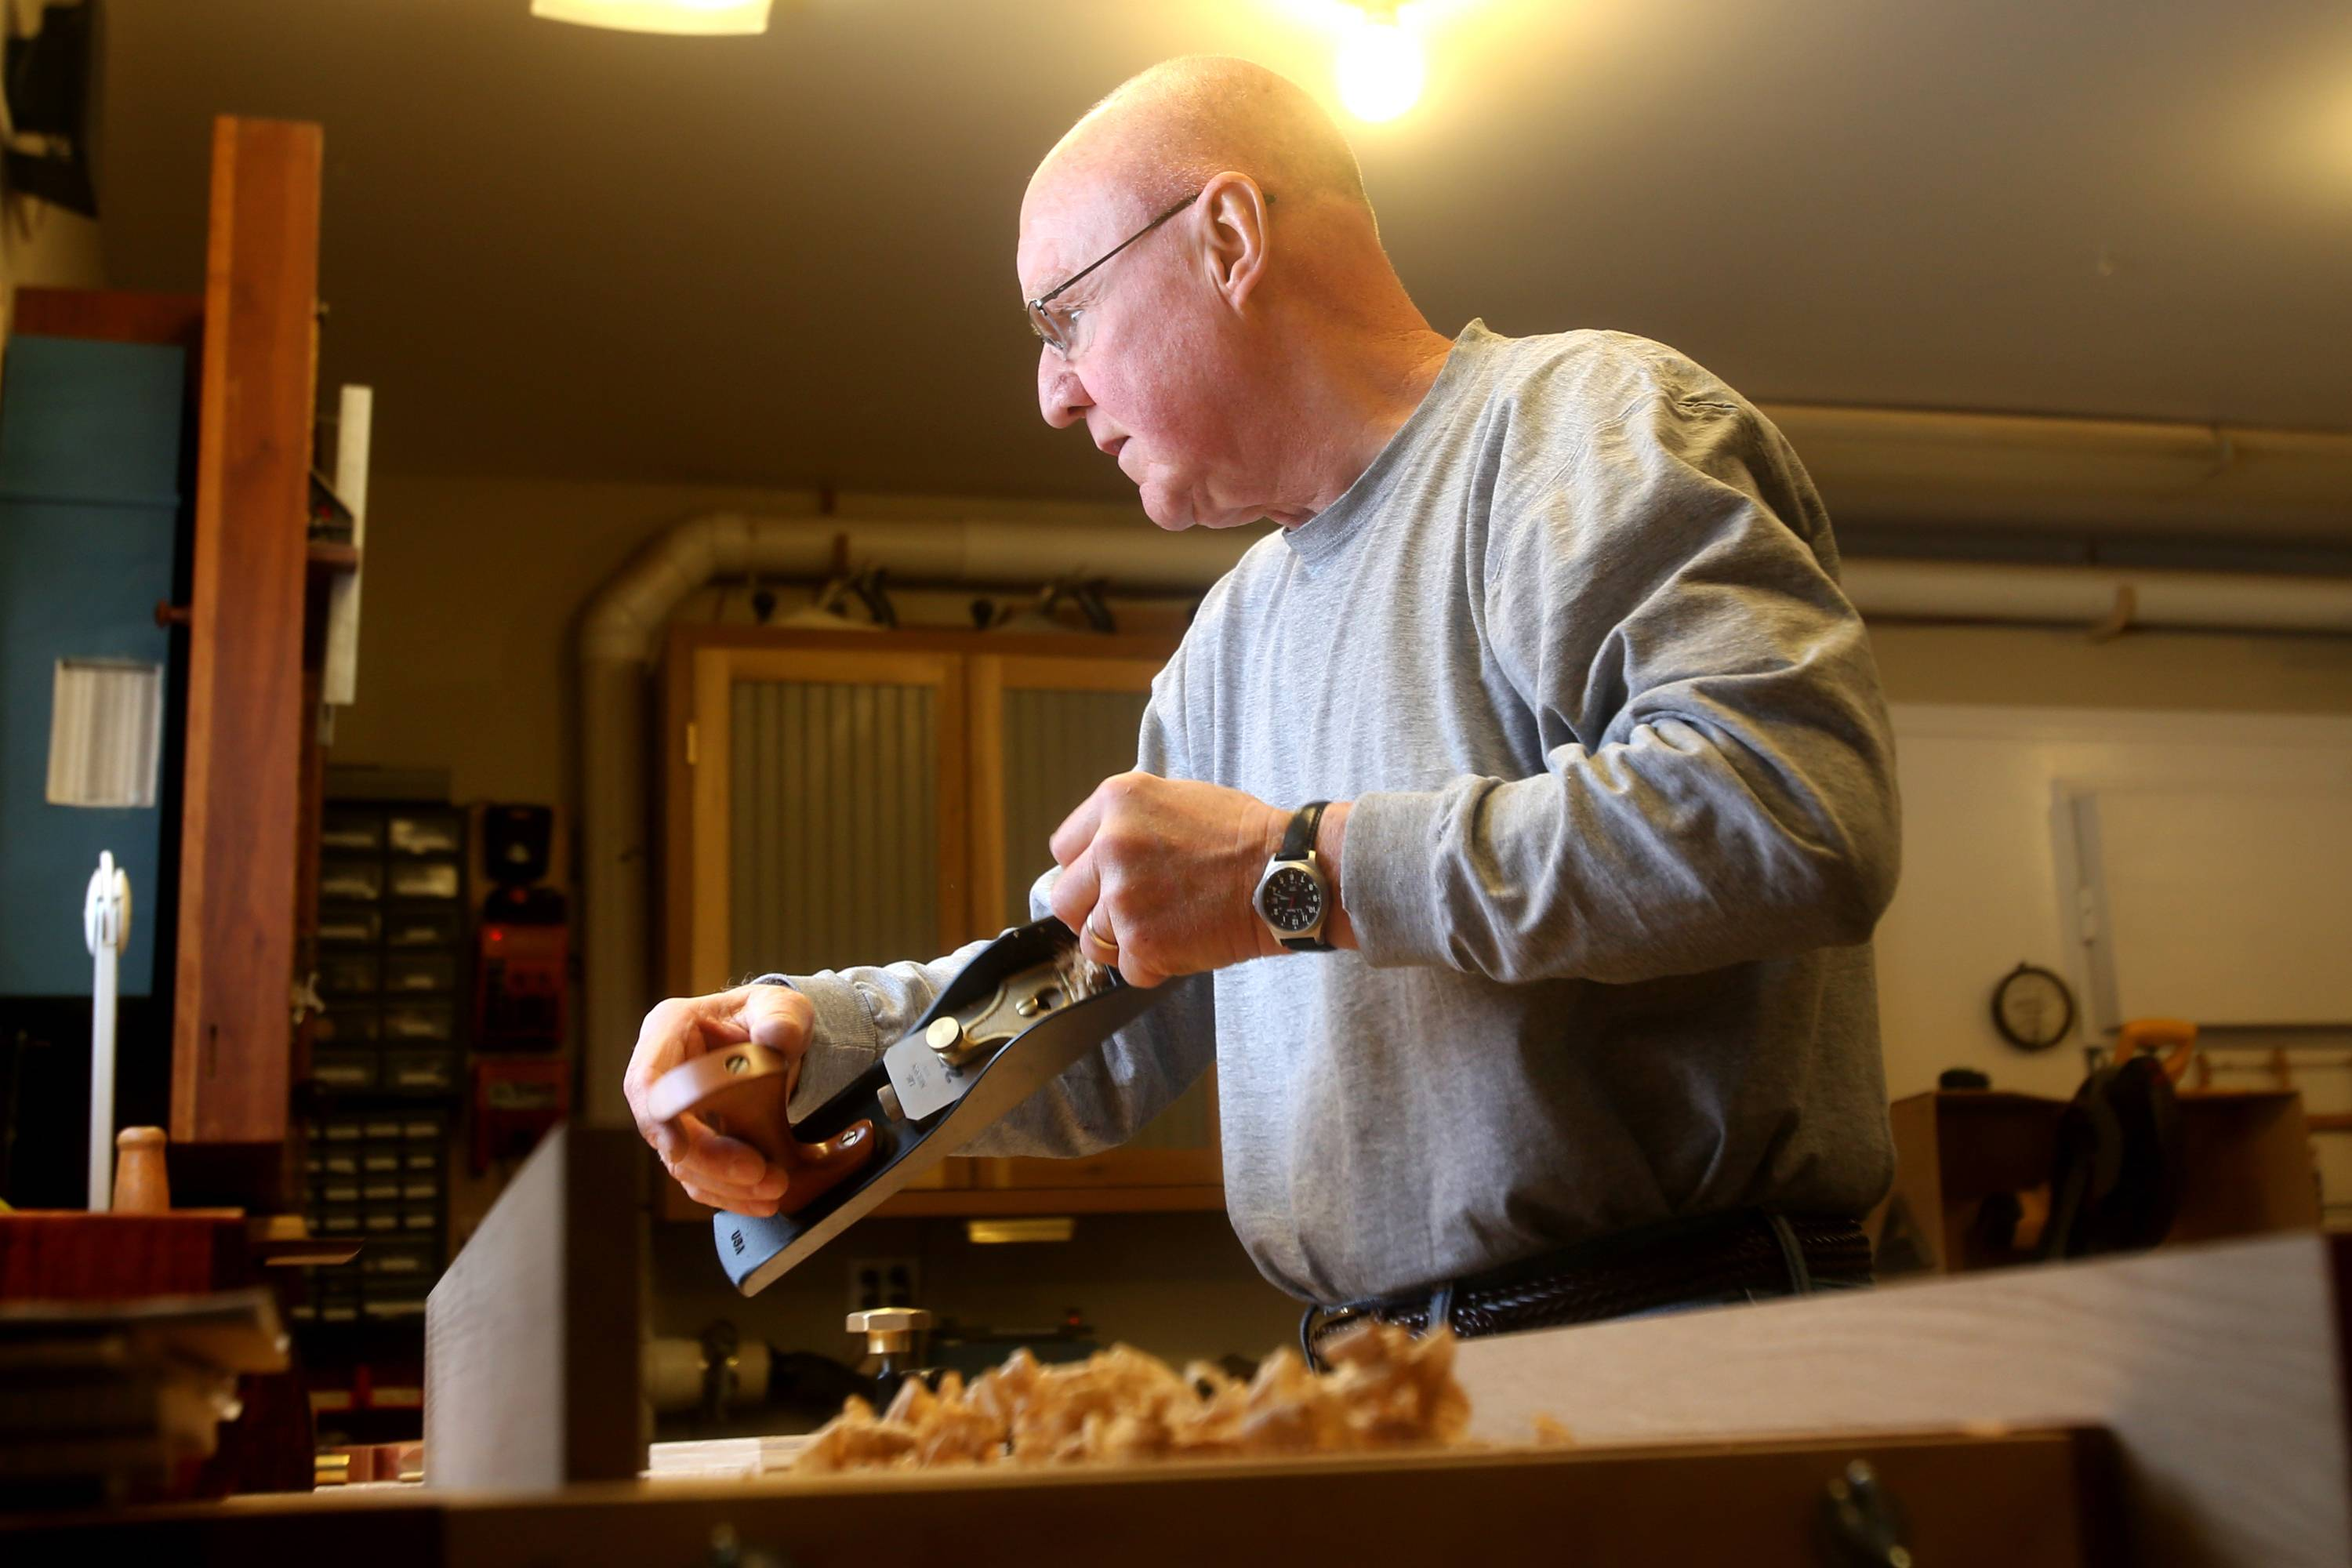 Maier uses hand planes, and says they produce an almost glasslike finish.